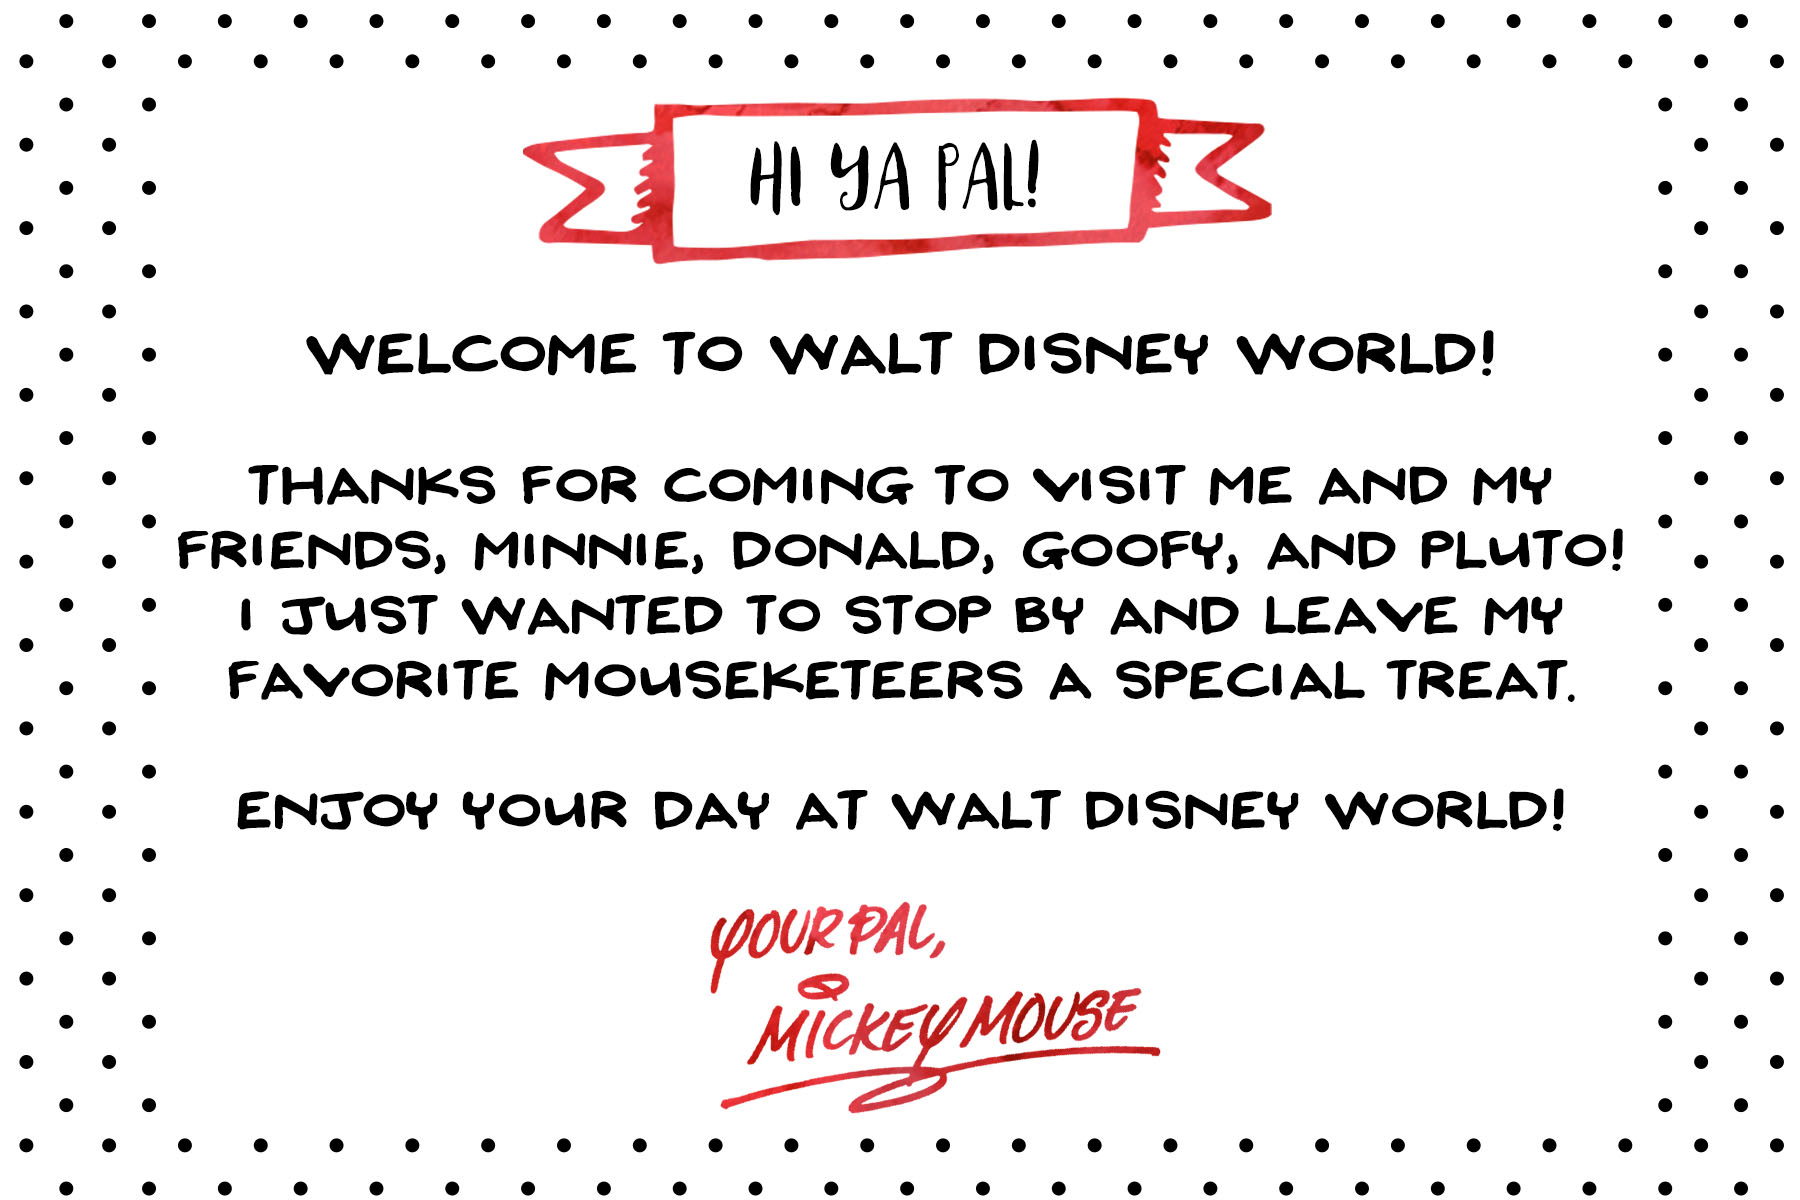 Free Printable Note from Mickey Mouse for Disney World Vacation | Wit ...